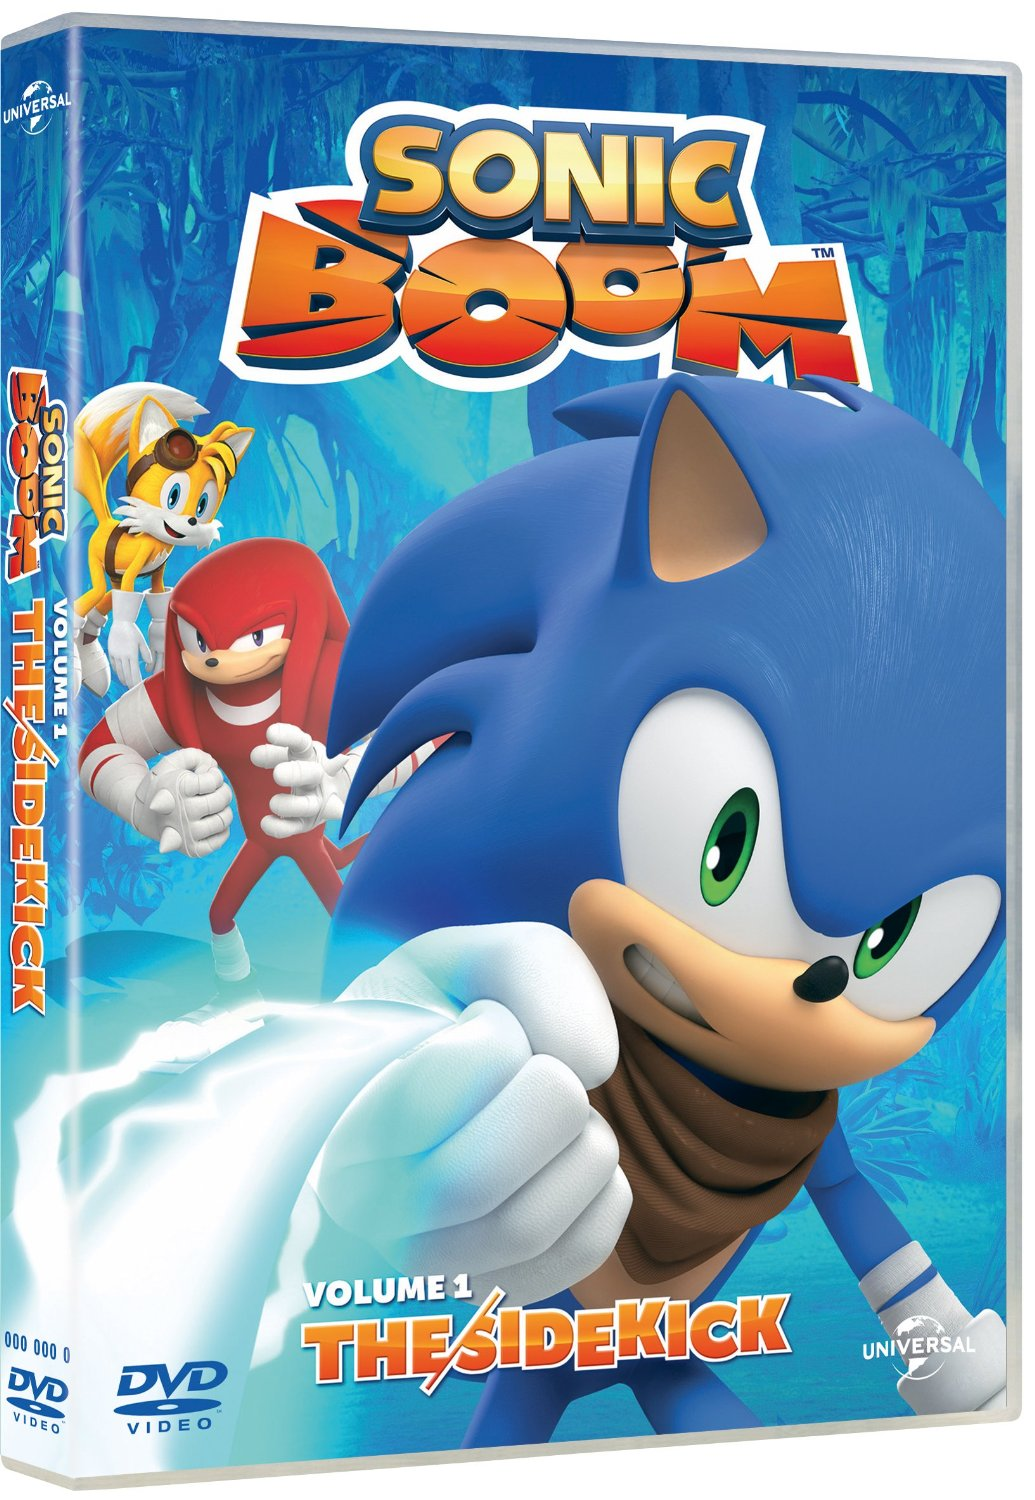 Sonic Boom DVD ... Knuckles Game